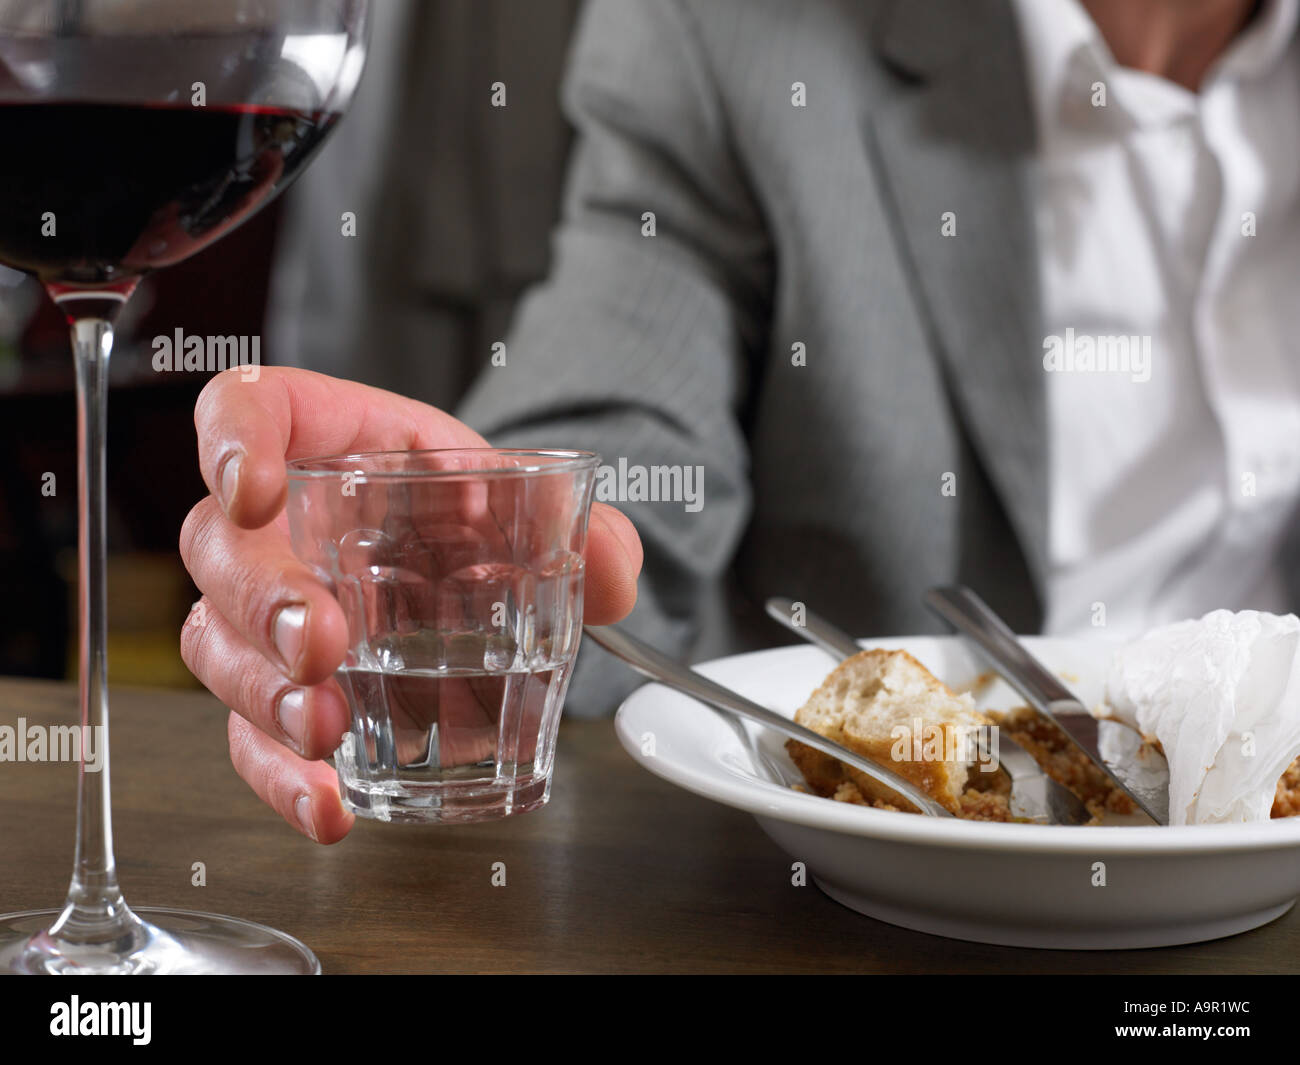 Man sitting with glass of water and finished meal - Stock Image